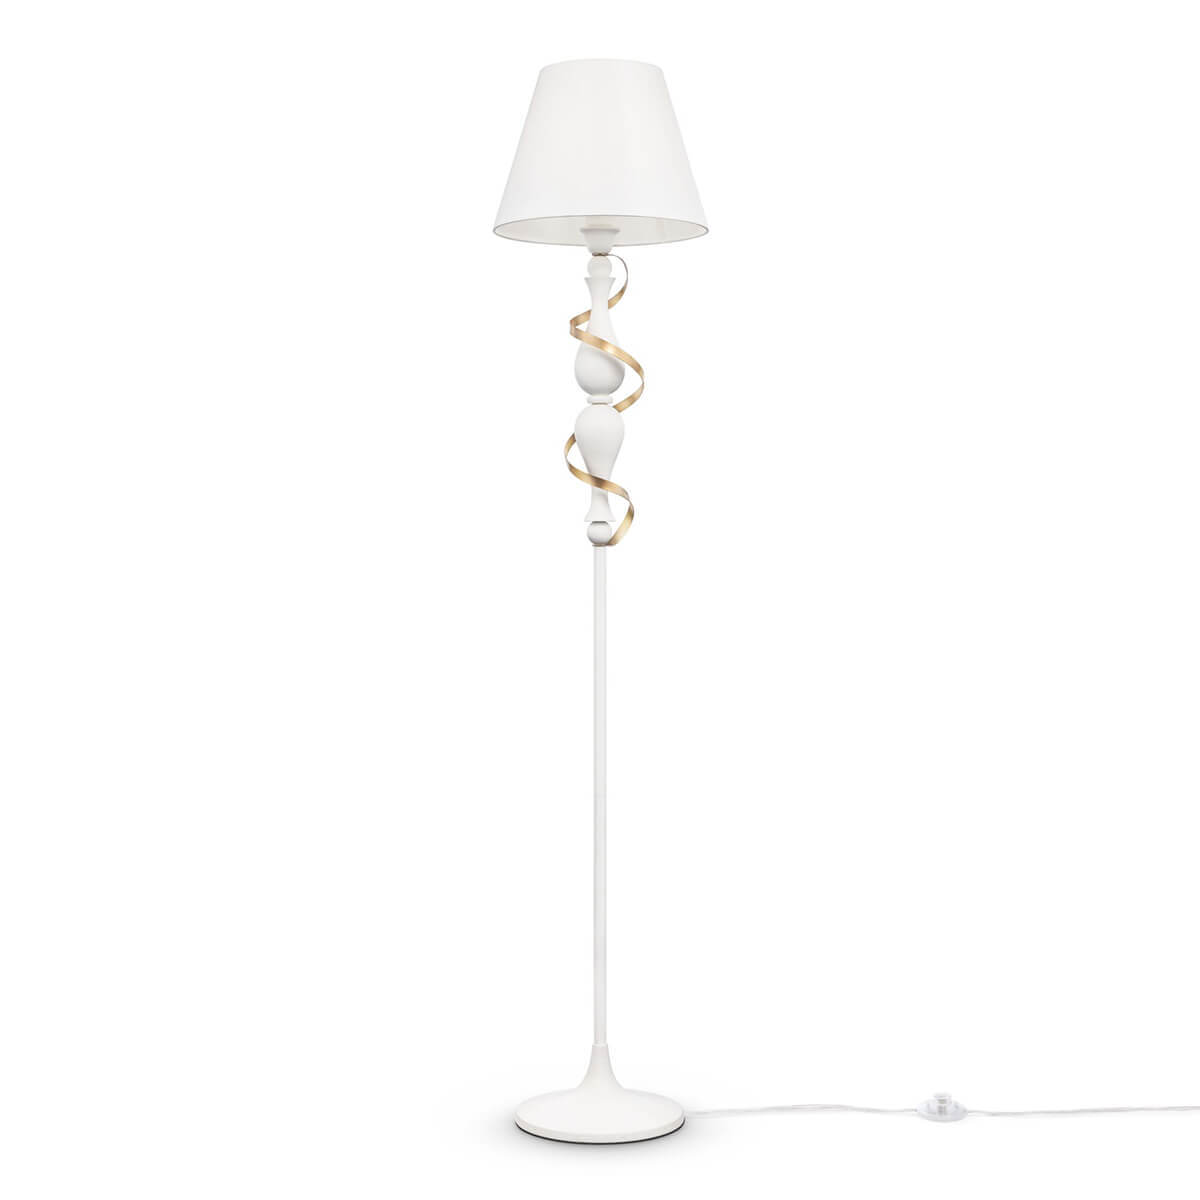 Торшер Maytoni ARM010-01-W Intreccio White